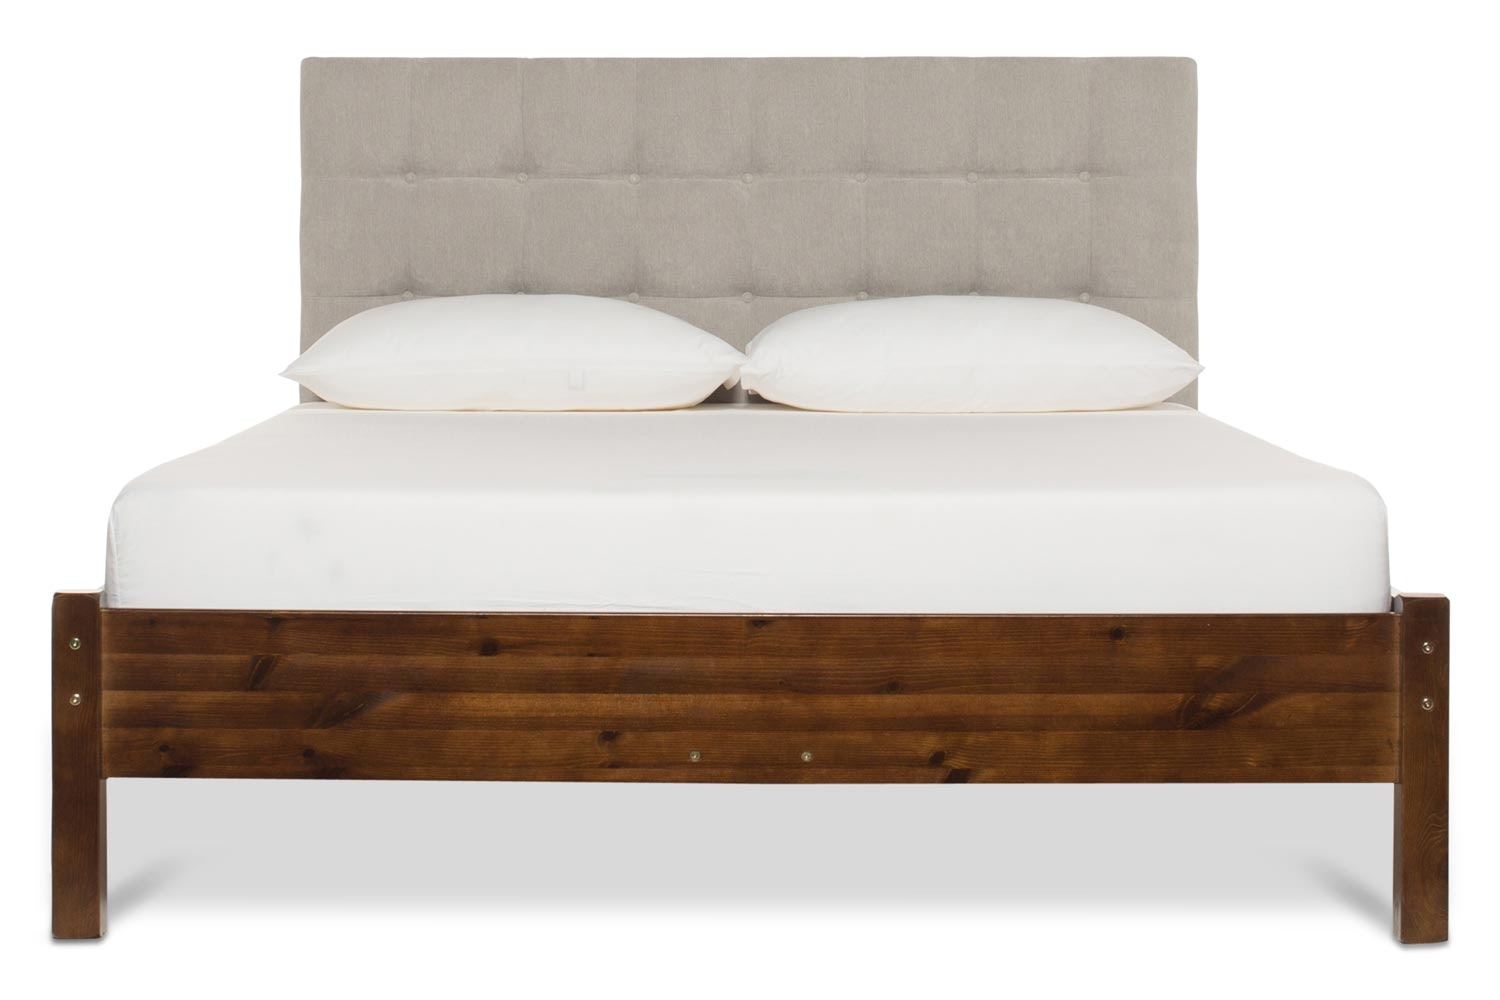 Emily Loft Walnut Bed Frame | 4FT6 | Portman Headboard Silver